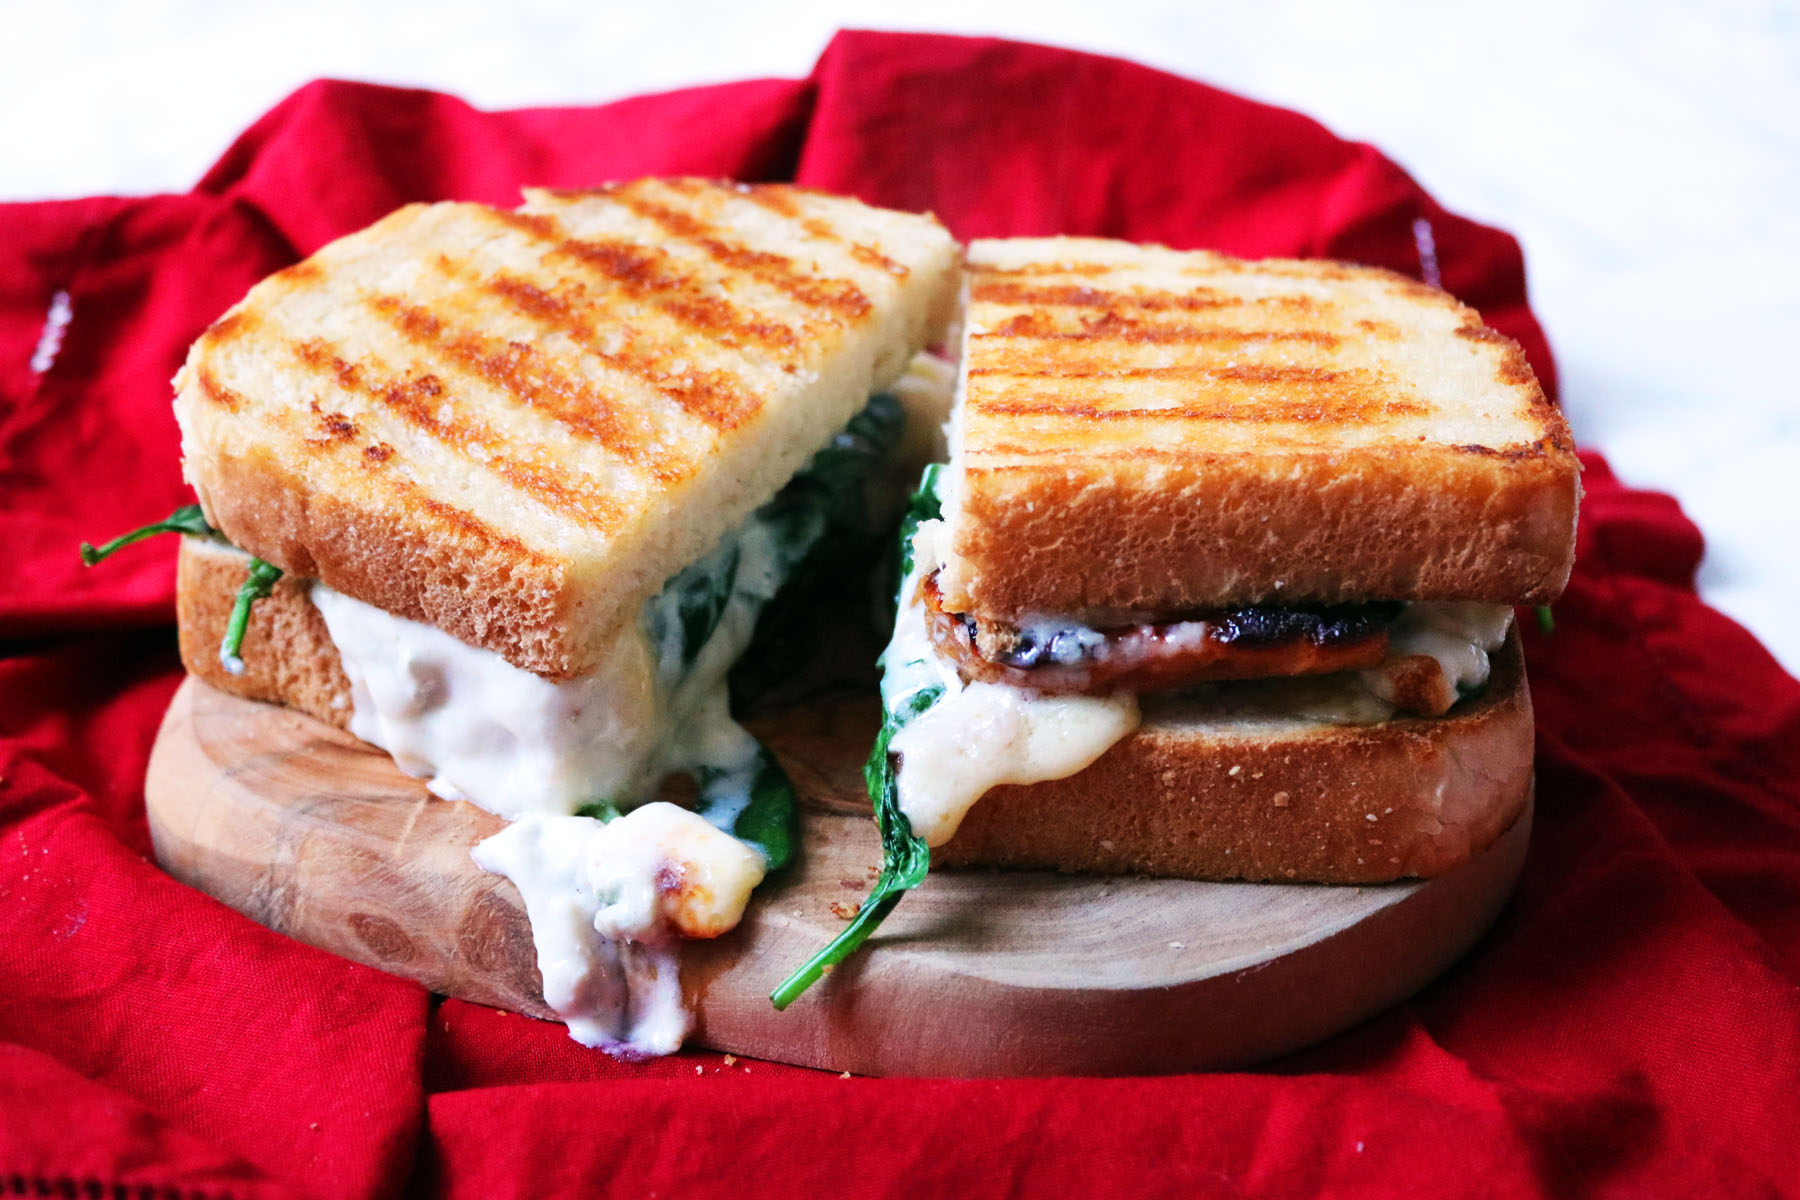 Spinach, Pear and Gorgonzola Toasted Sandwich